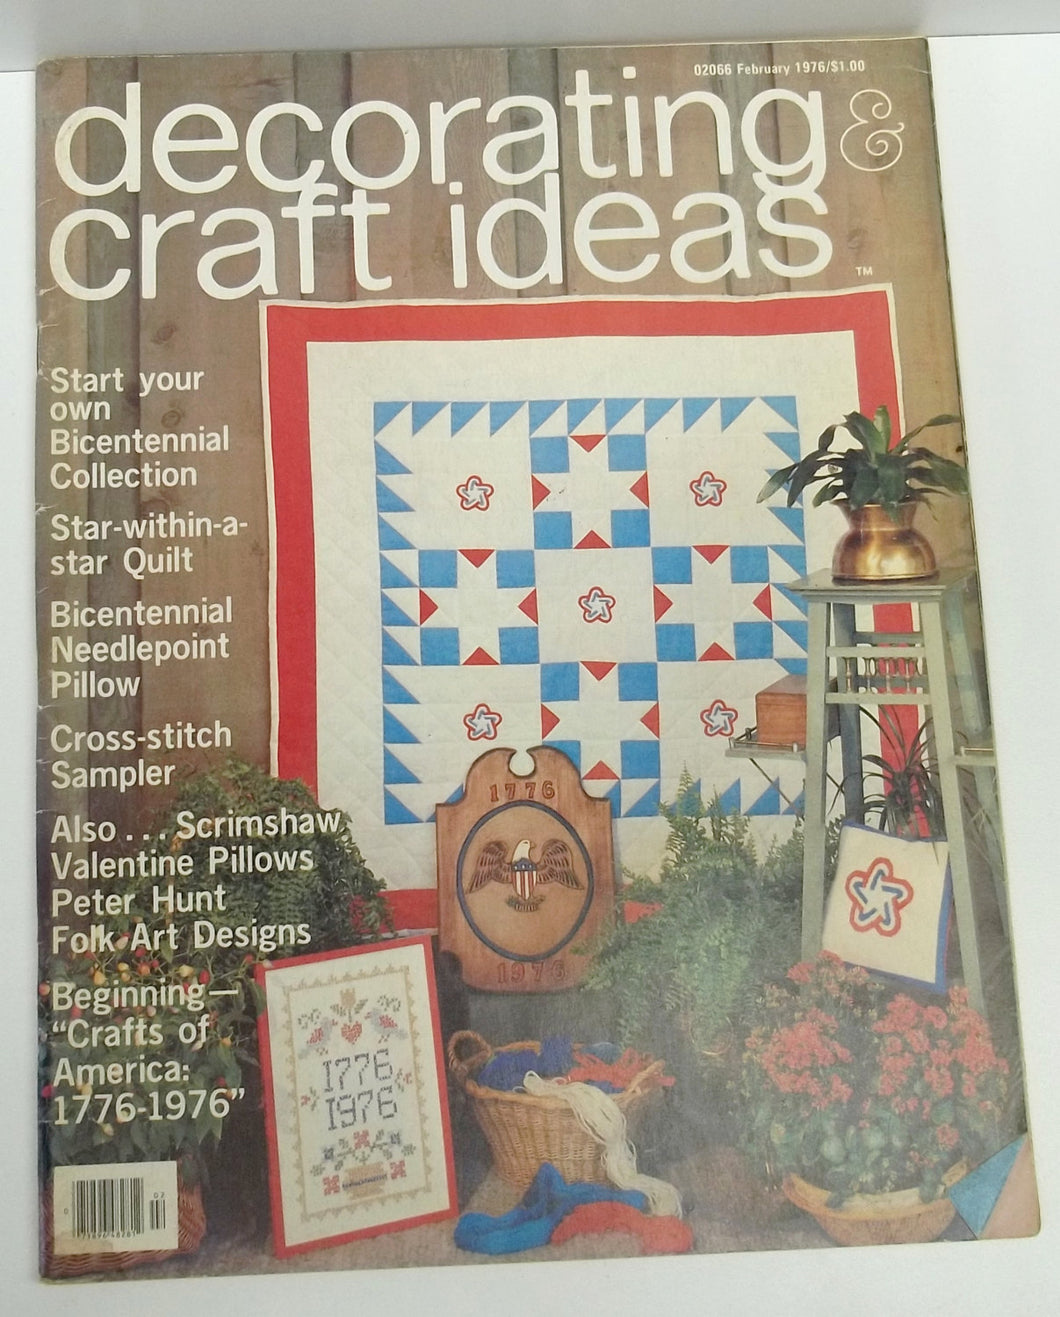 Vintage Decorating Craft Ideas Made Easy Magazine From February